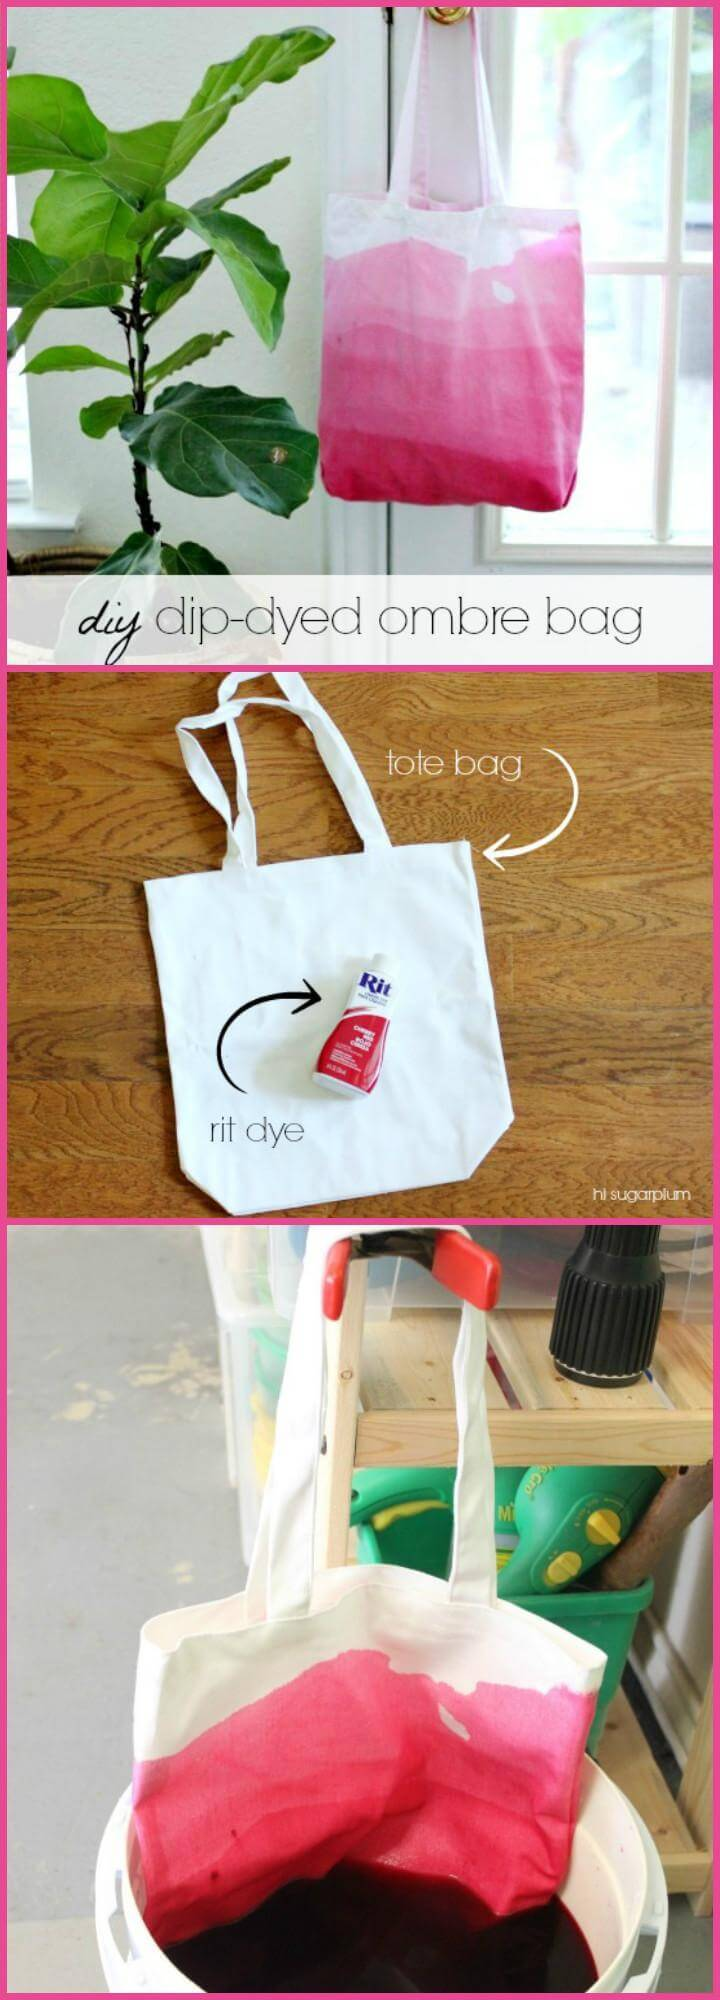 DIY Dip Dyed Ombre Bag Mother's Day Gift